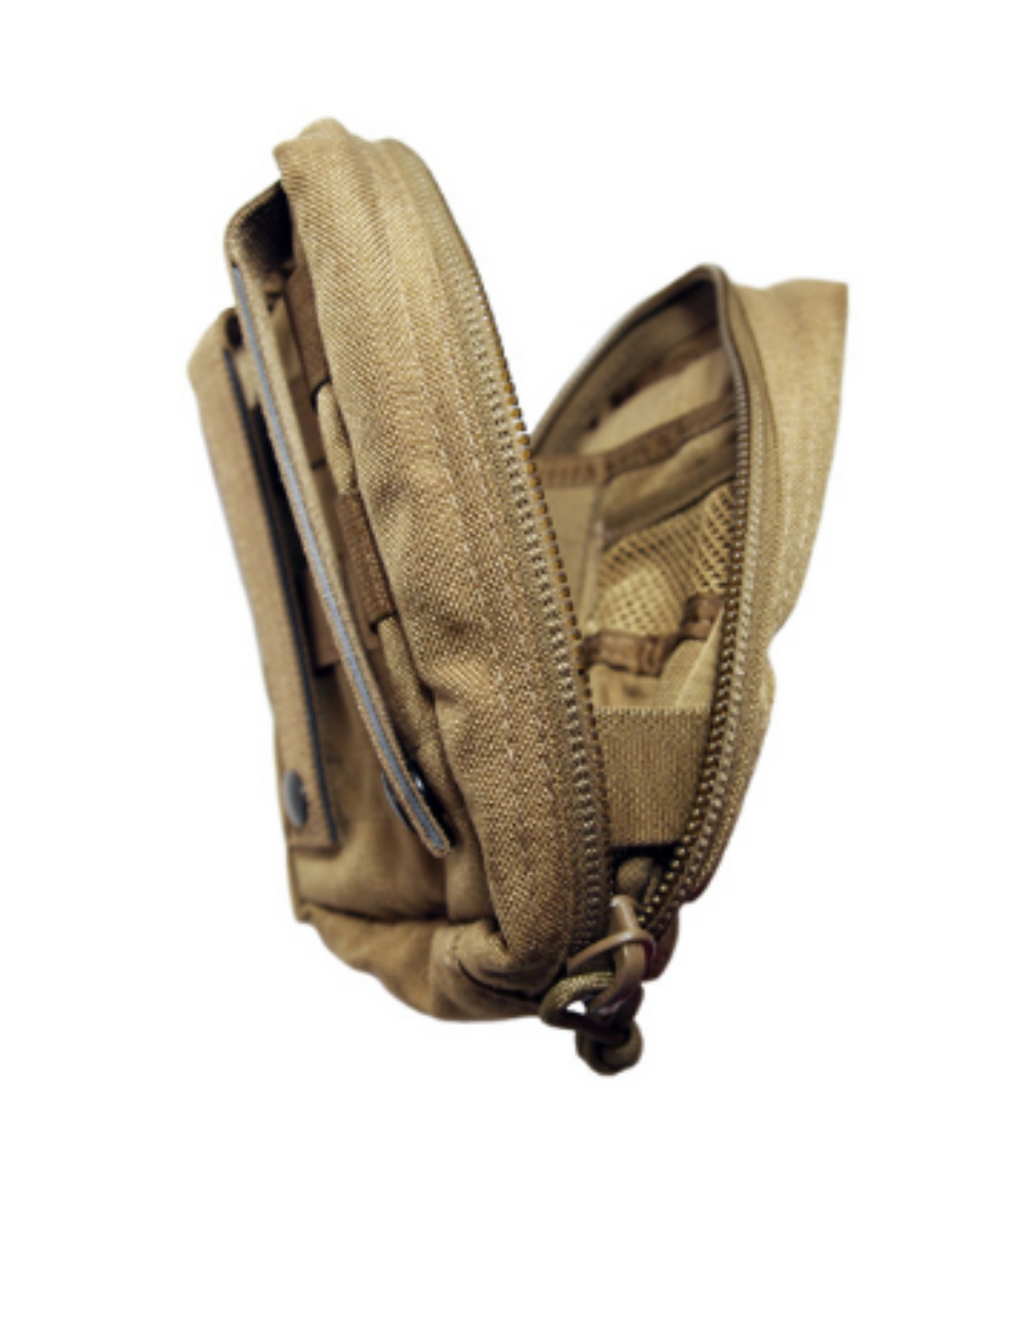 IFAK Pouches – Tactical South